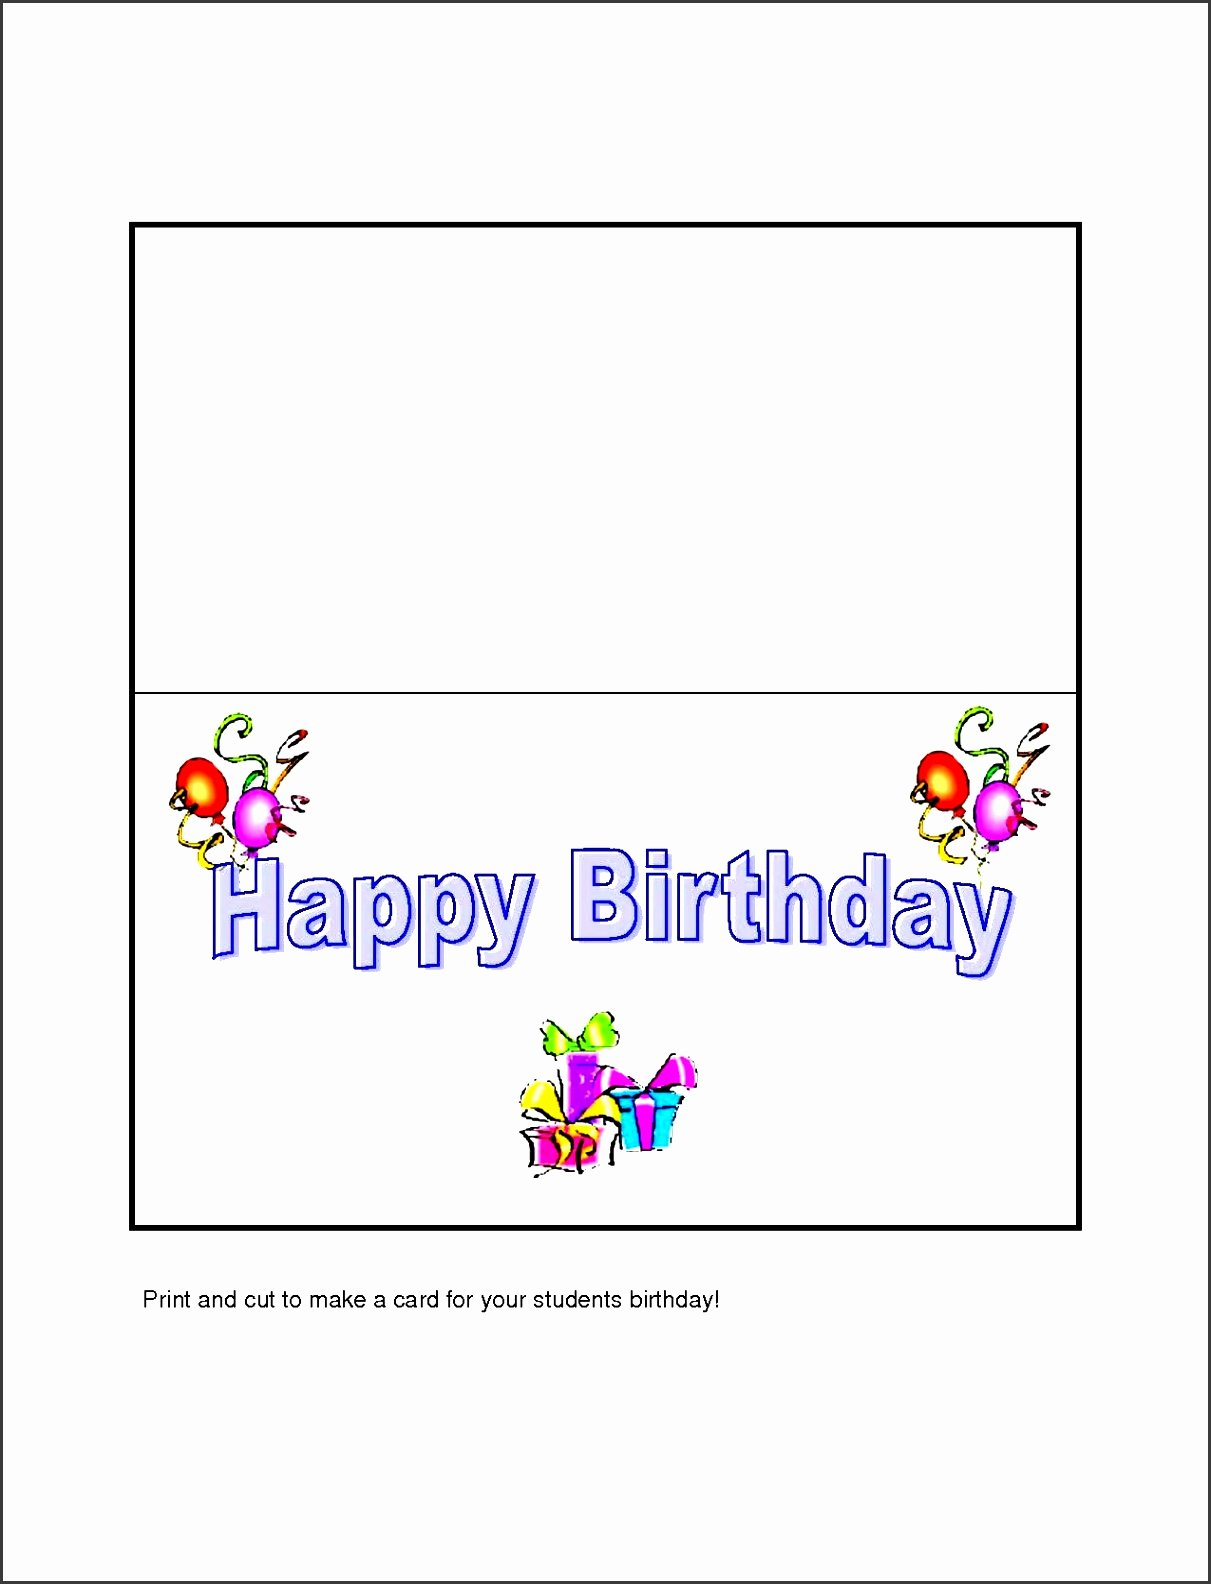 10 Free Microsoft Word Greeting Card Templates